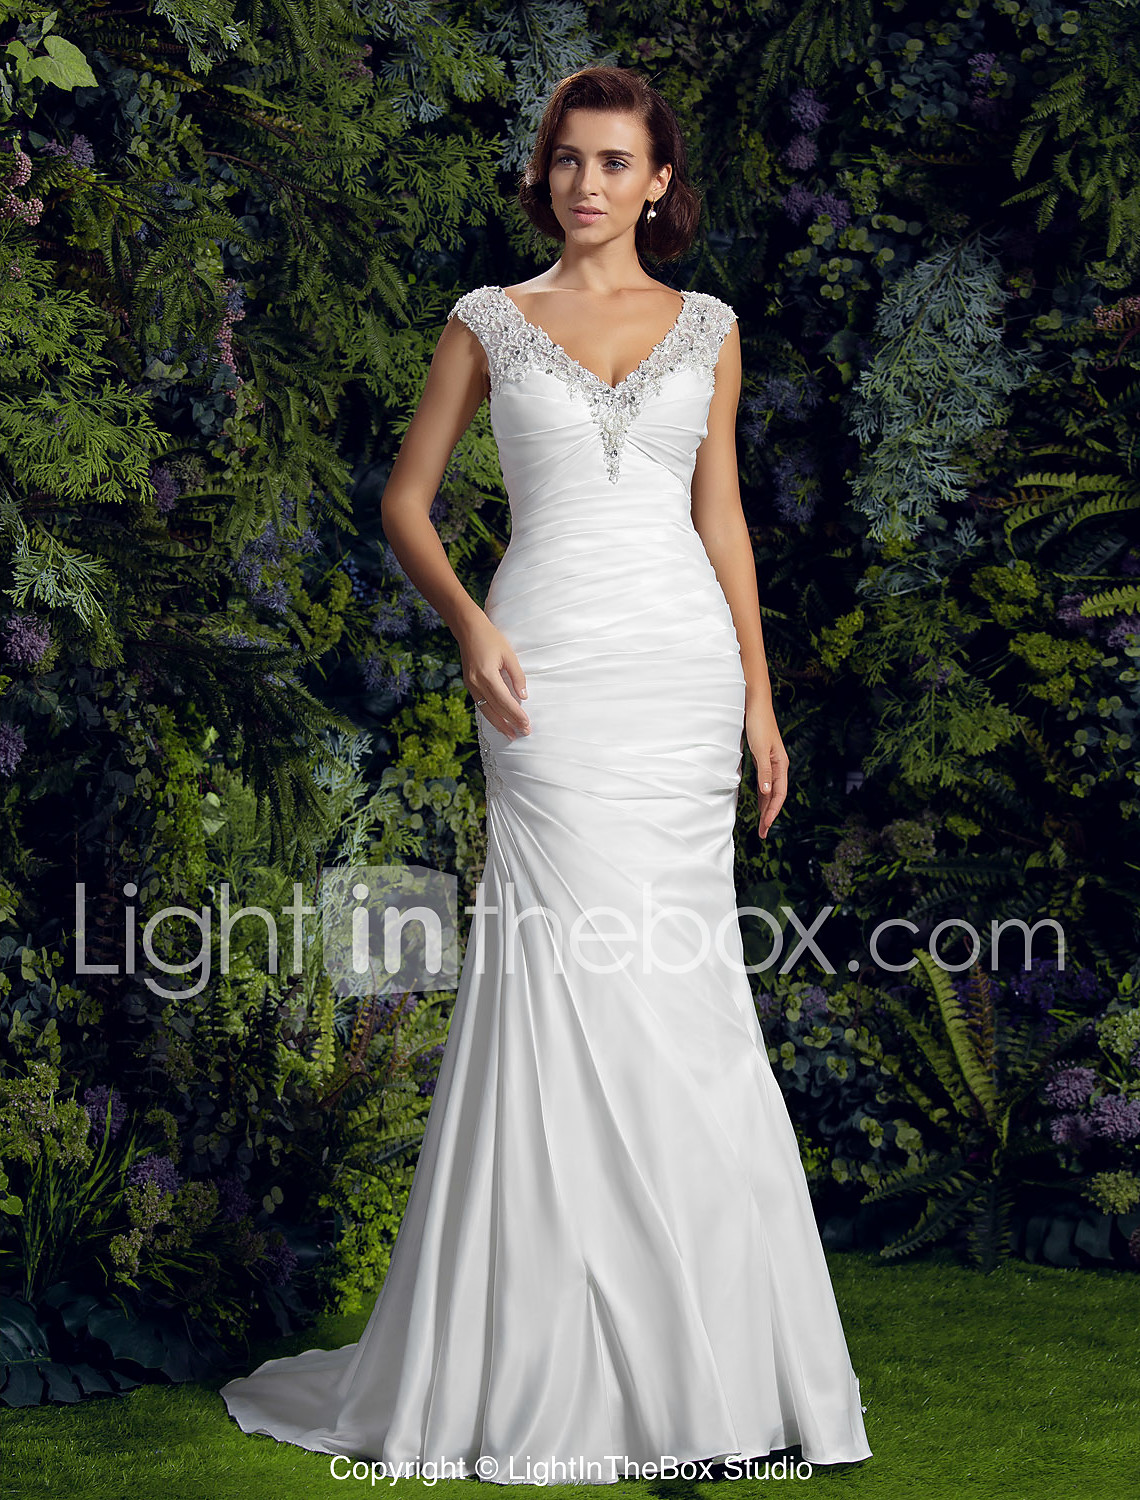 trumpet mermaid wedding dresses wedding dress mermaid LAN TING BRIDE Trumpet Mermaid Wedding Dress Chic Modern See Through Court